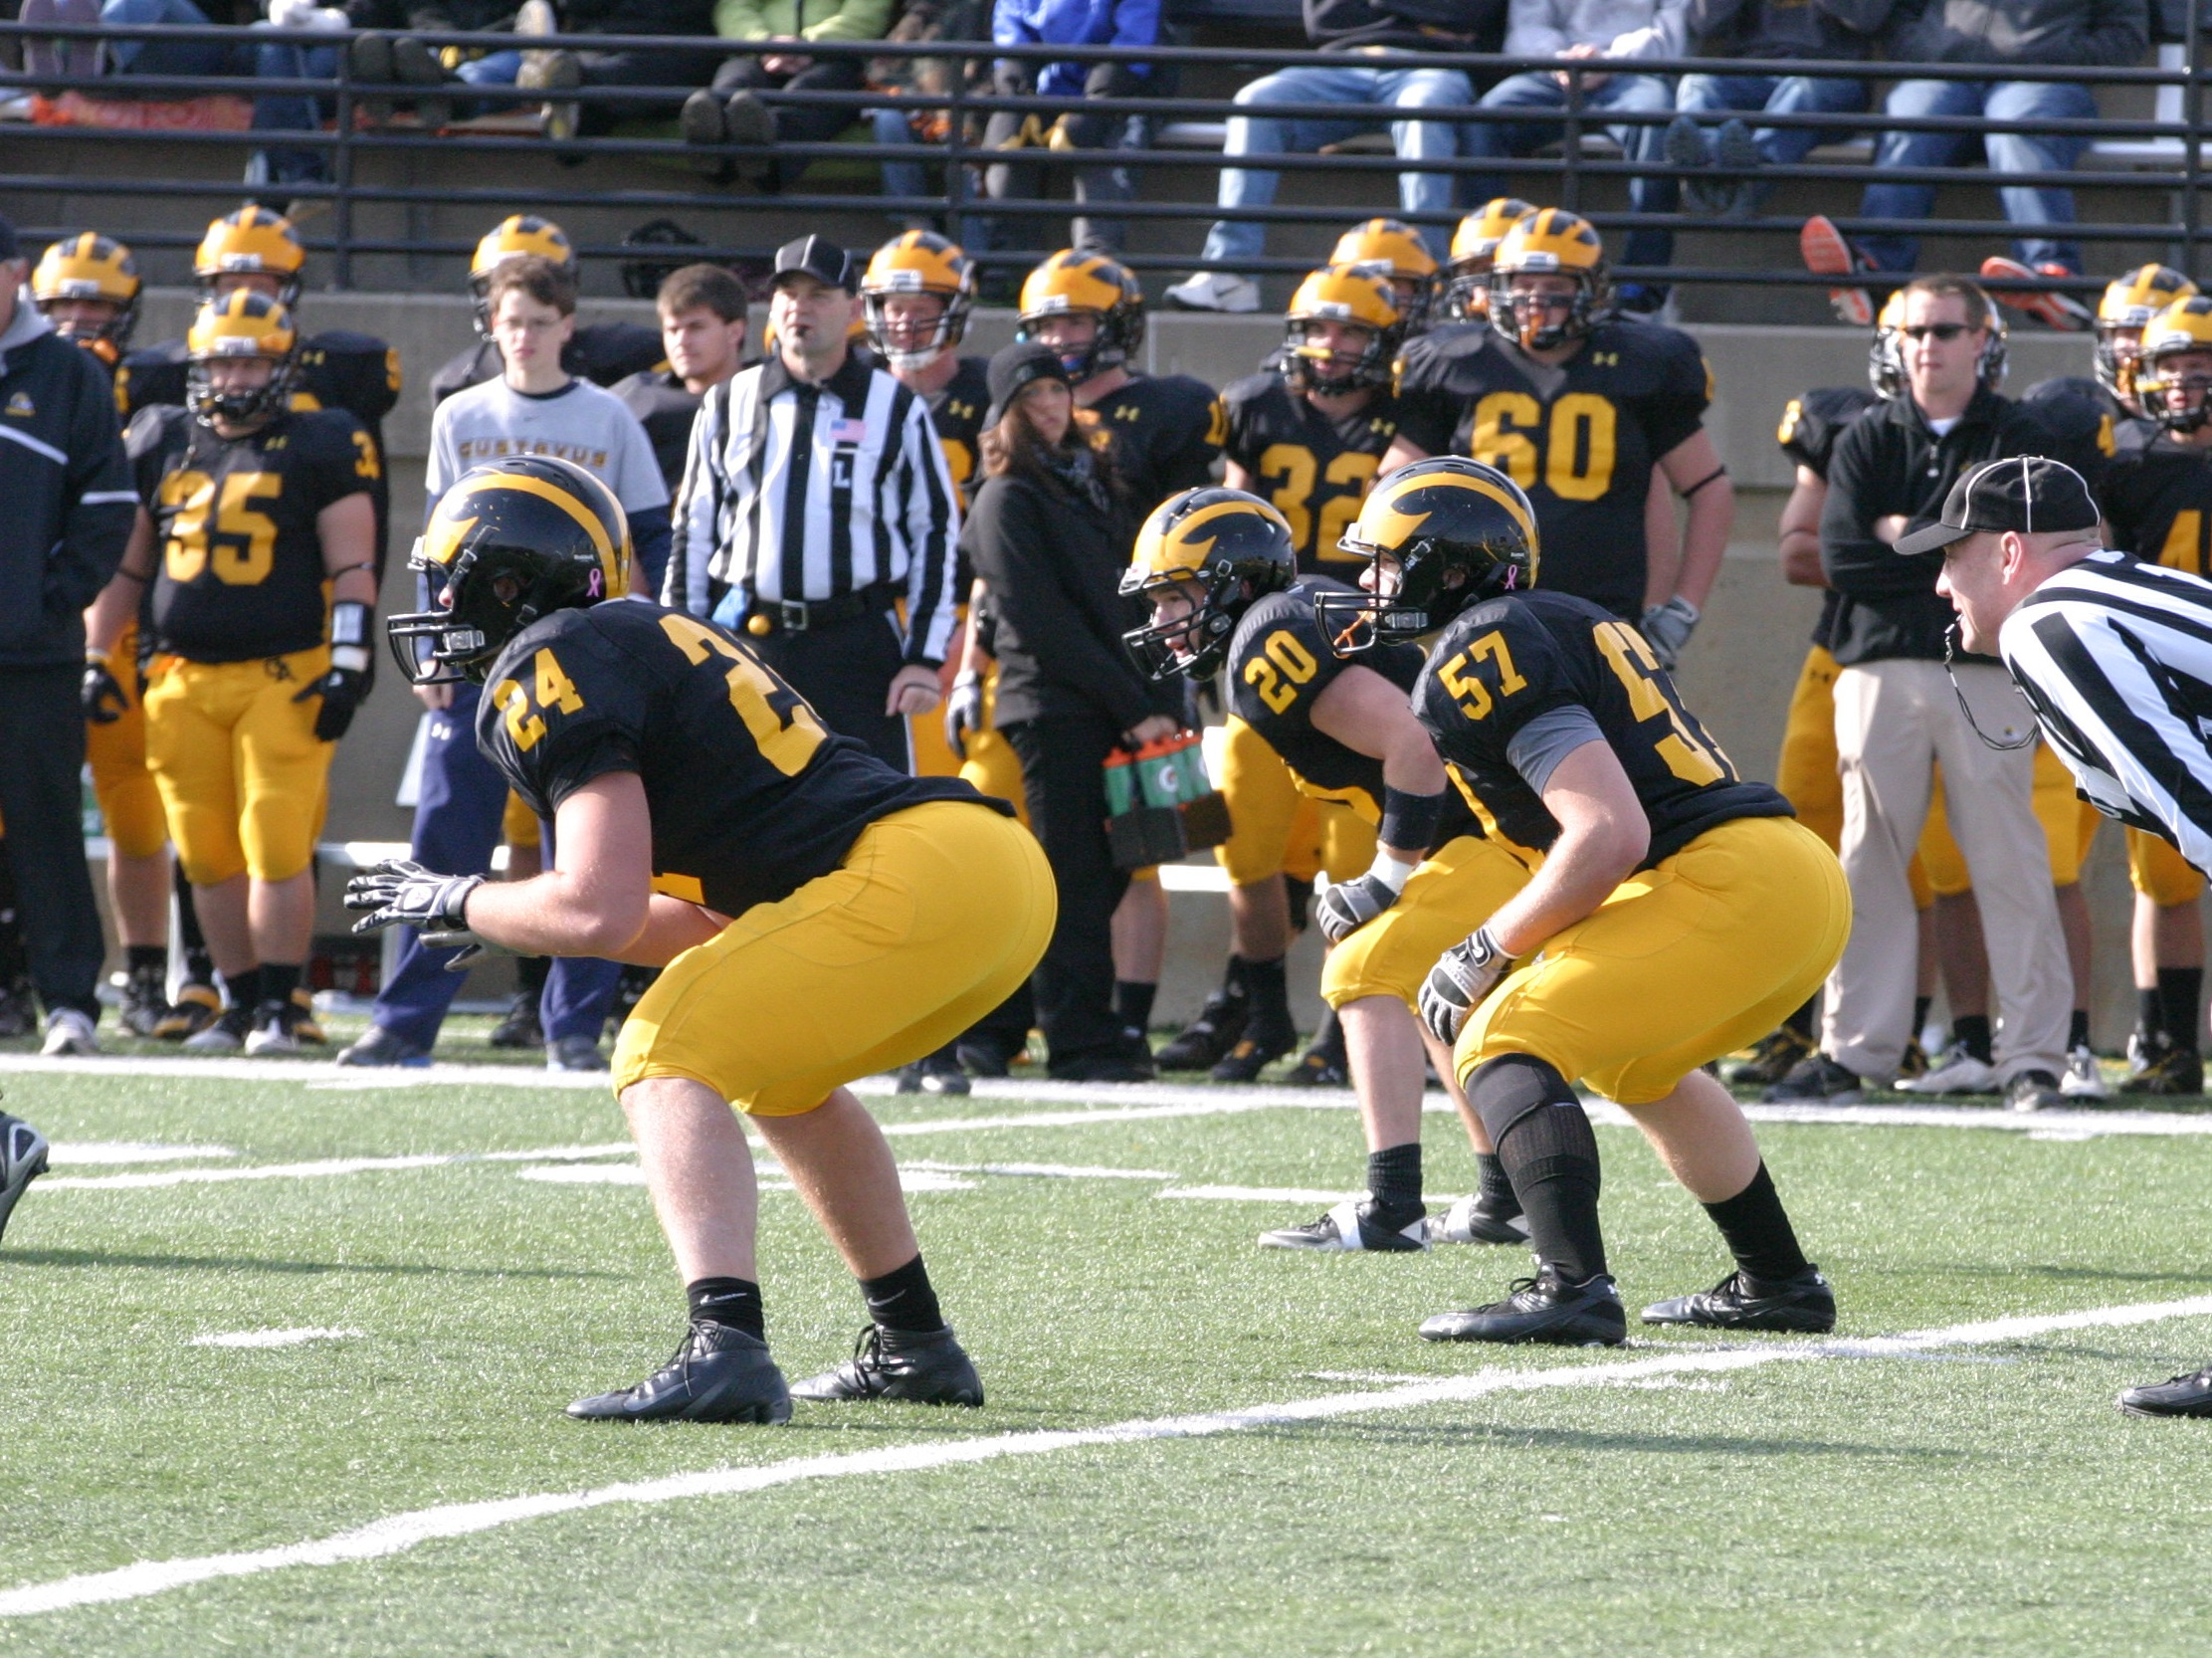 Football Opens Home Schedule With Augsburg Saturday Posted on